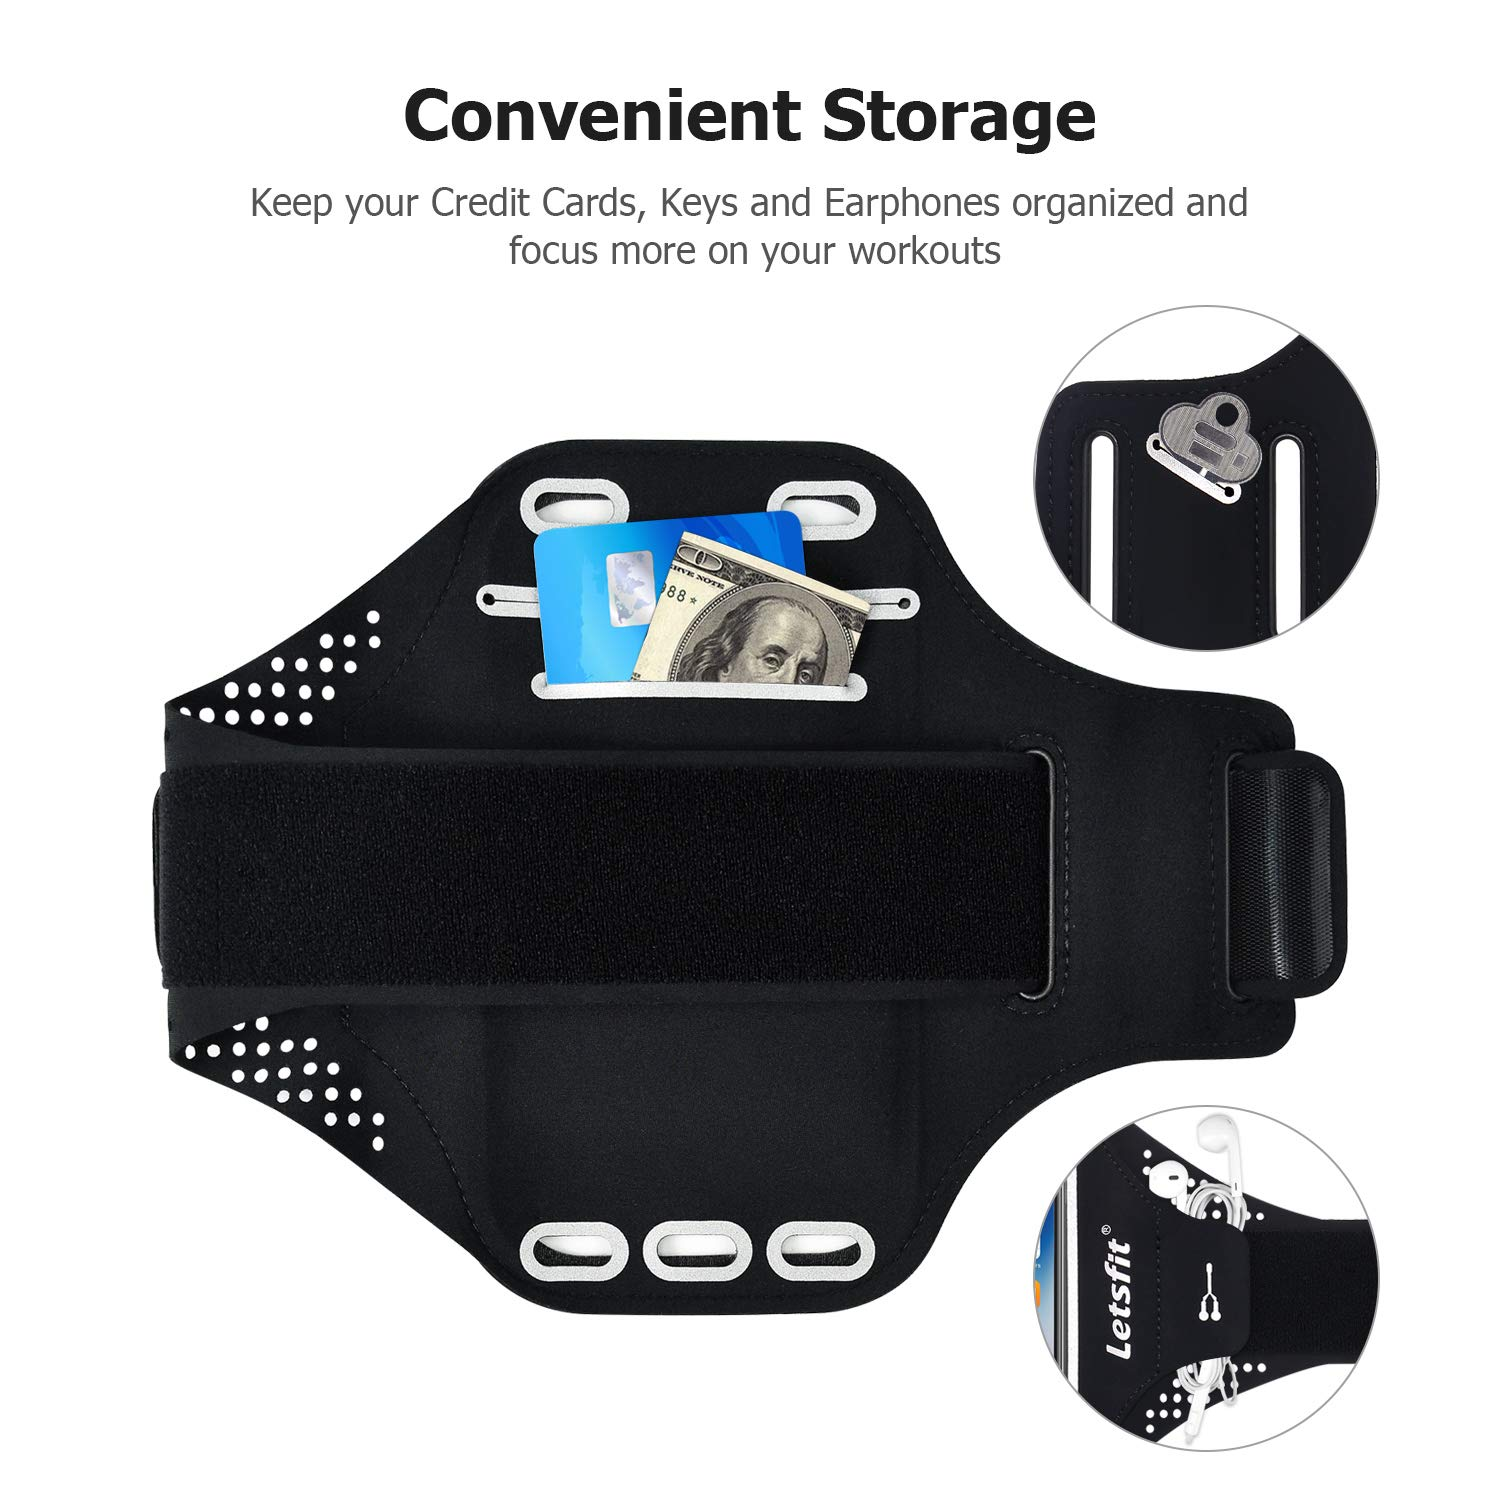 Letsfit Running Armband, Water Resistant Cell Phone Armband for iPhone 8 7 6 6s Samsung Galaxy S7/S6/S6 Edge with Key Slot, Headphone Slot and Face ID for Running, Walking, Hiking, Black